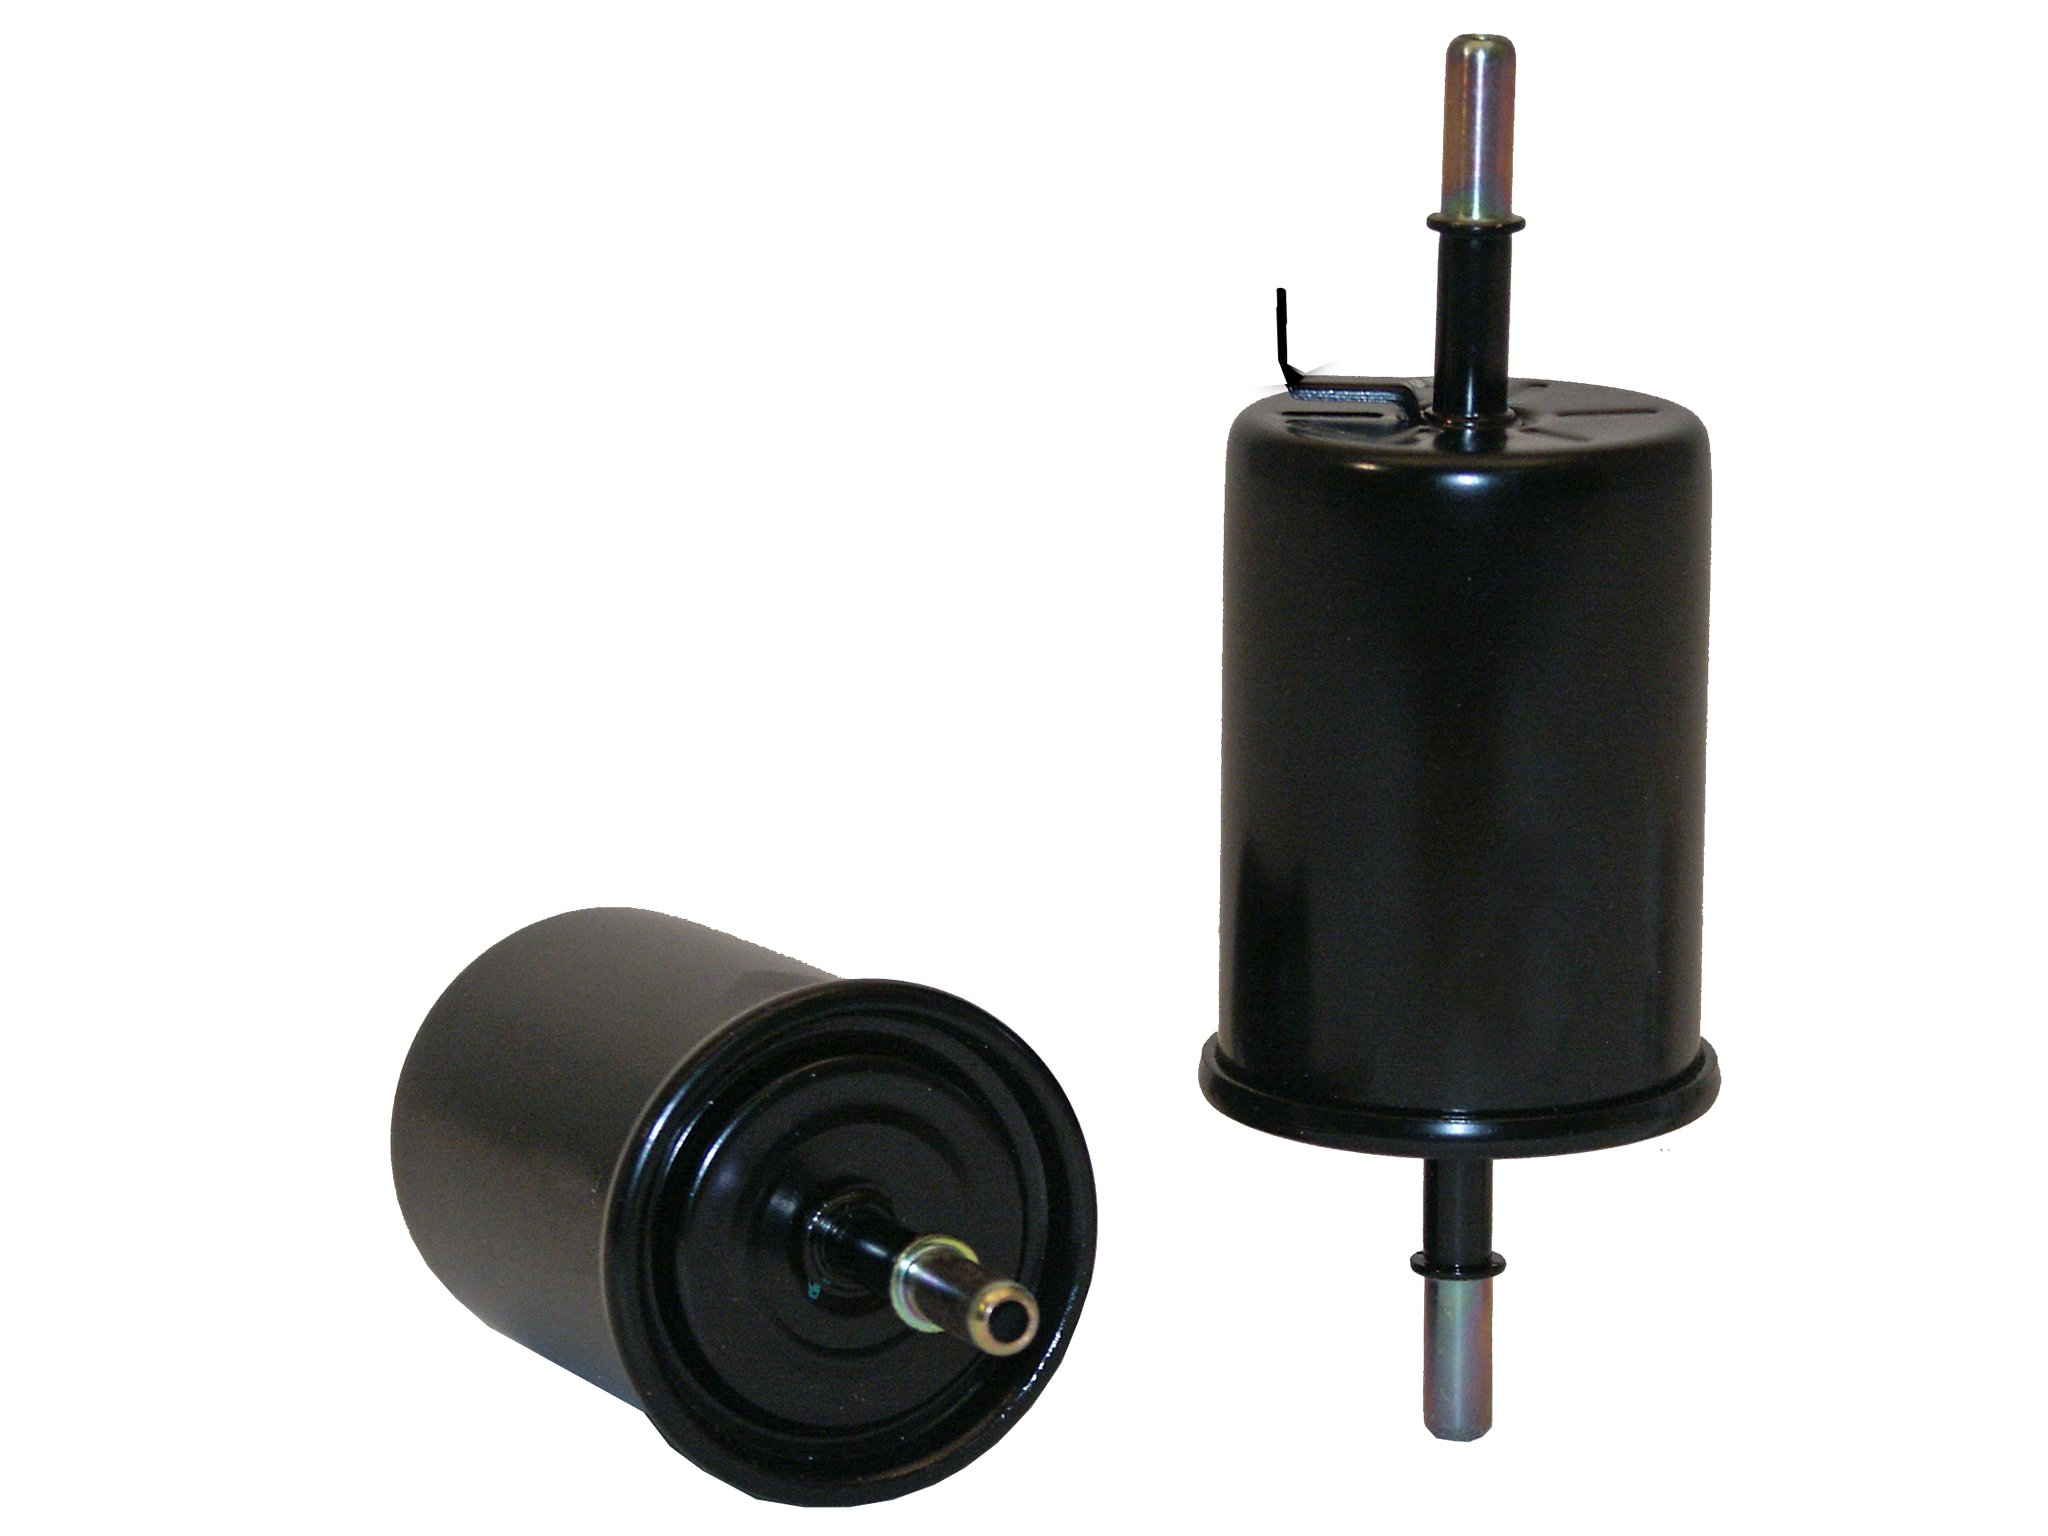 Fuel Filter 33850 for Chevy Aveo, Chevy Epica, Suzuki Verona, Chevy Matiz